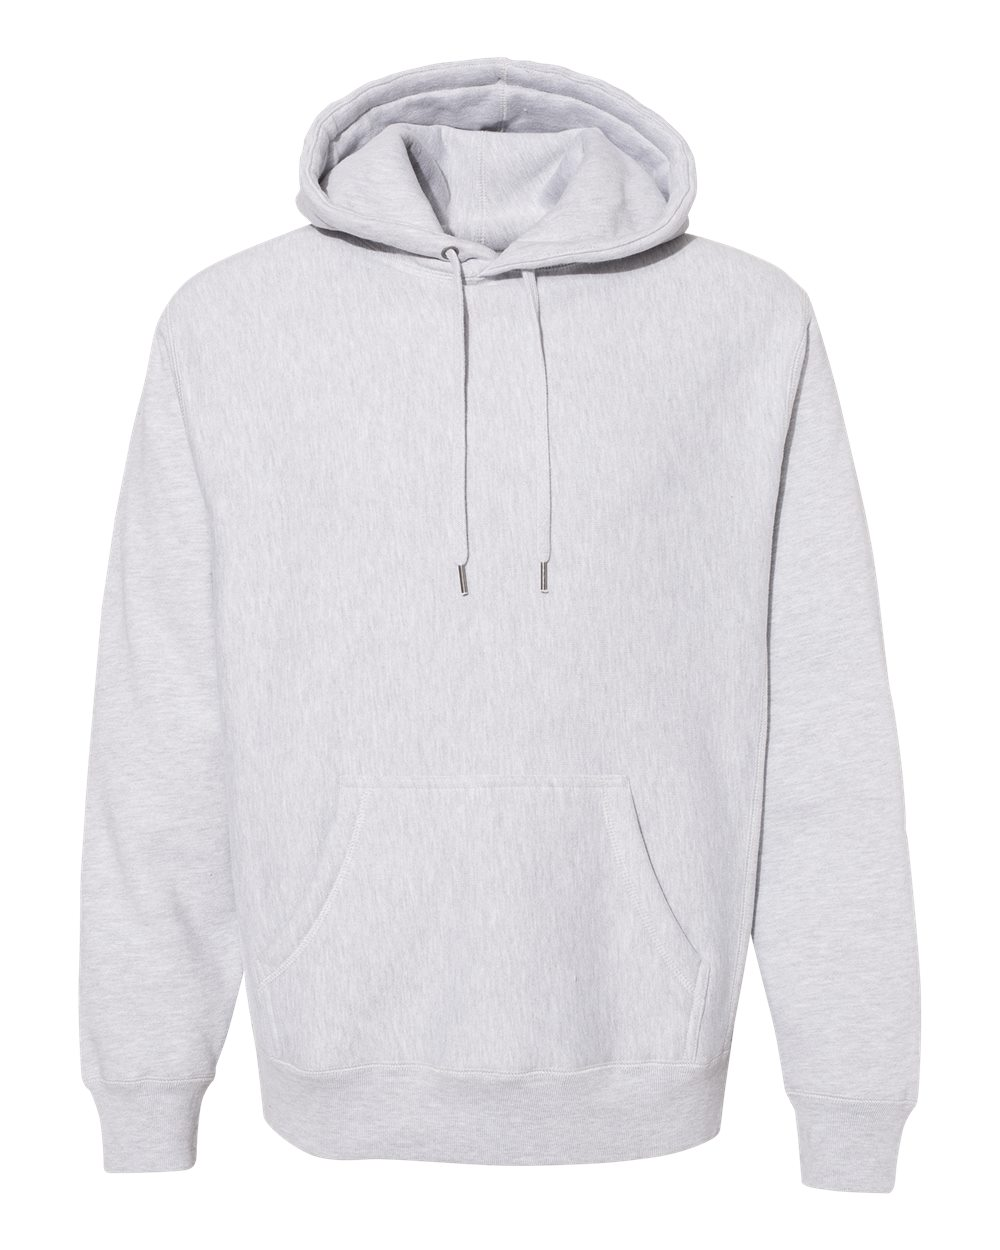 Independent-Trading-Co-Mens-Premium-Heavyweight-Cross-Grain-Hoodie-IND5000P thumbnail 21